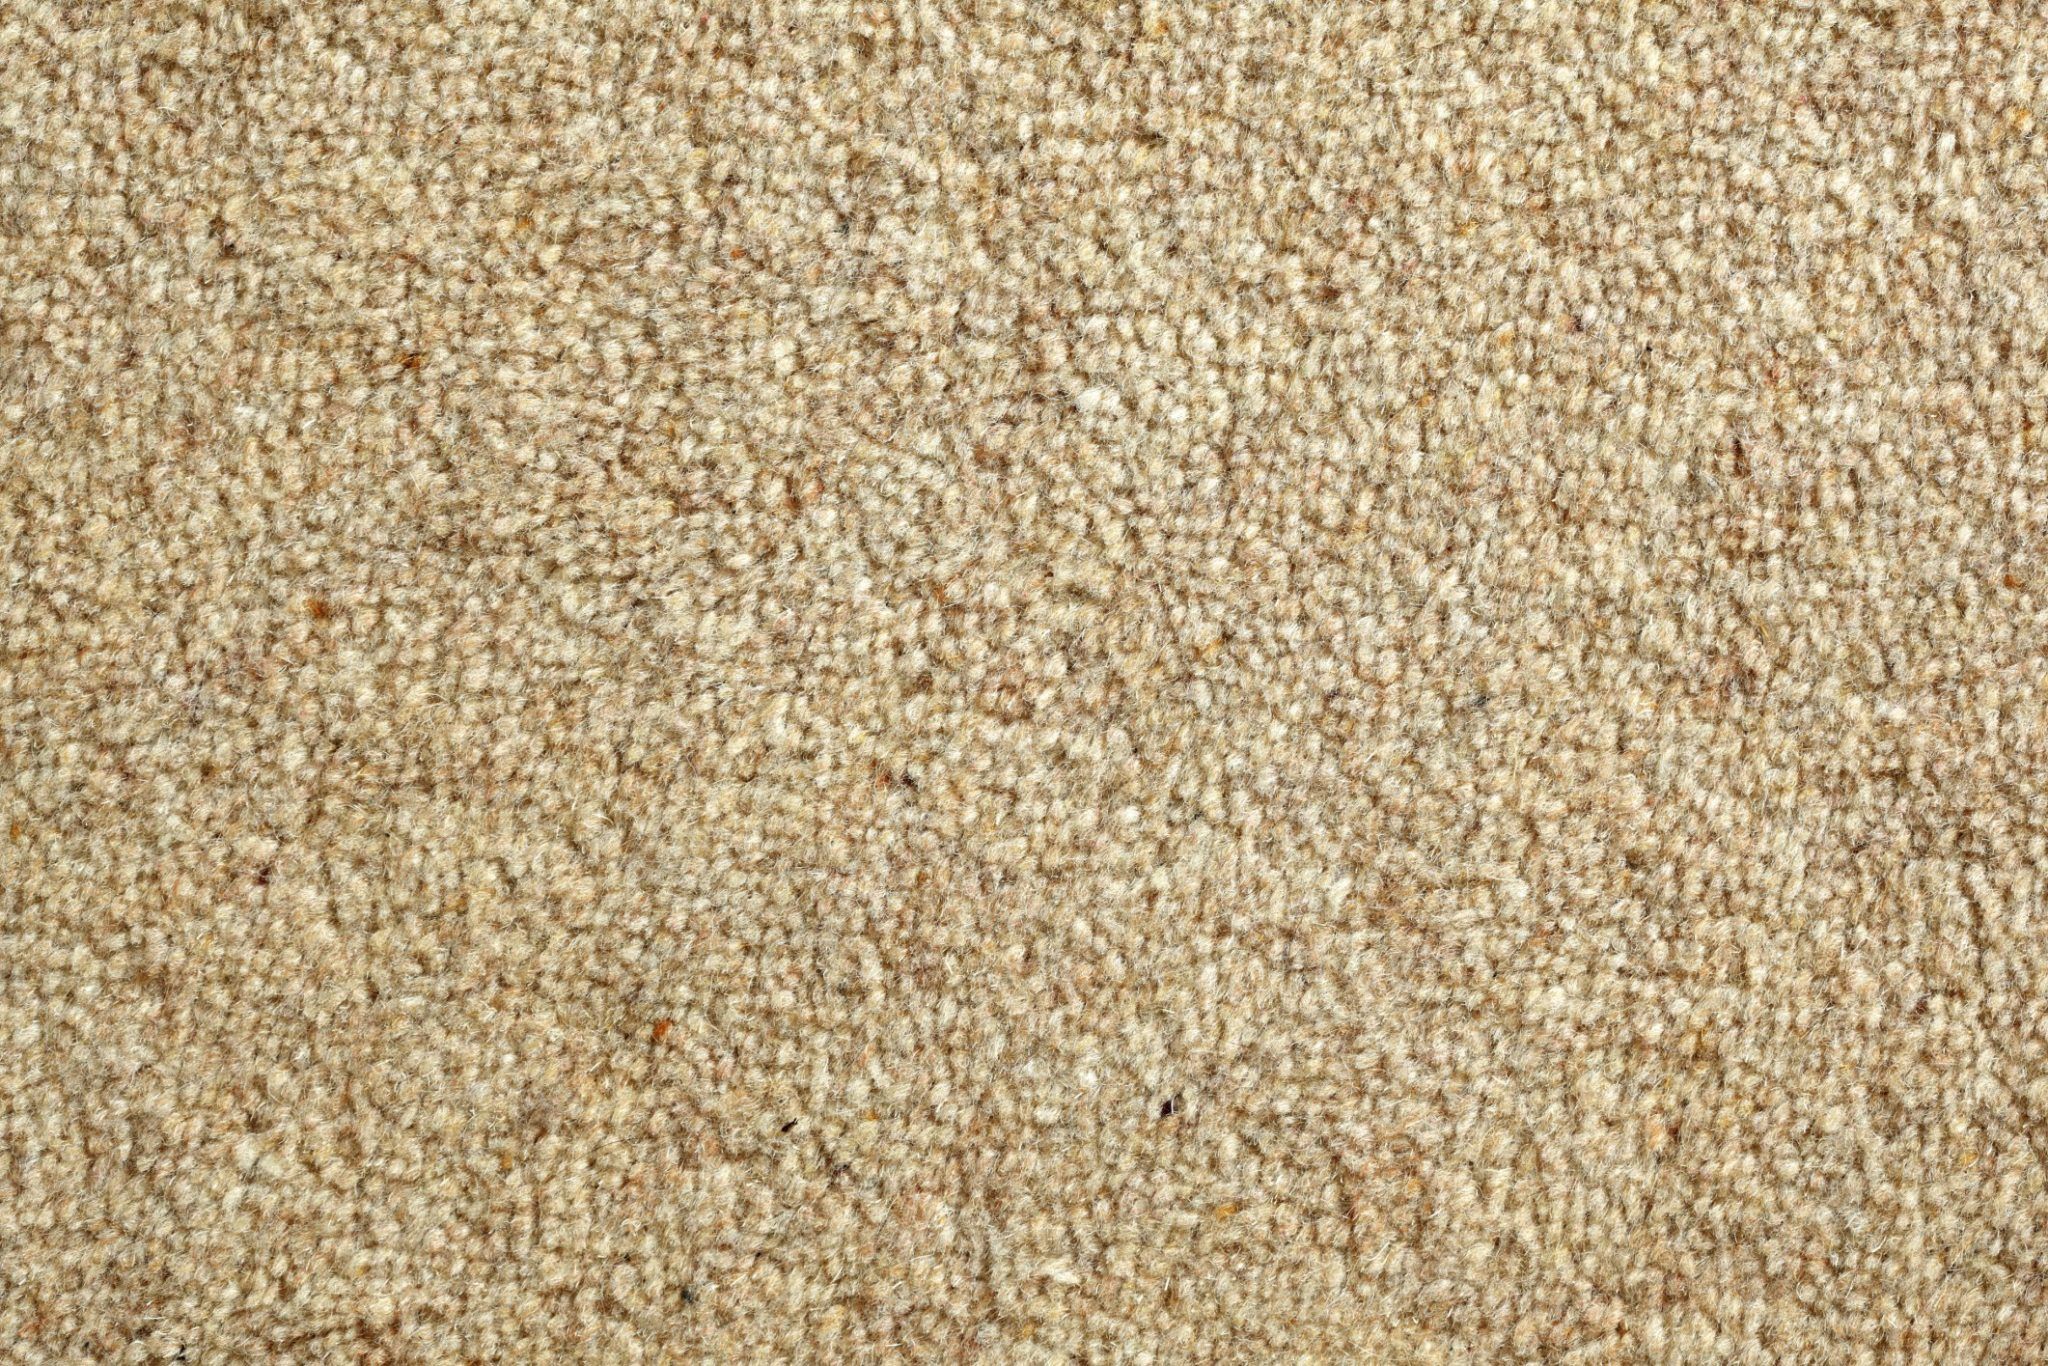 Beige carpet background - Carpet Gallery